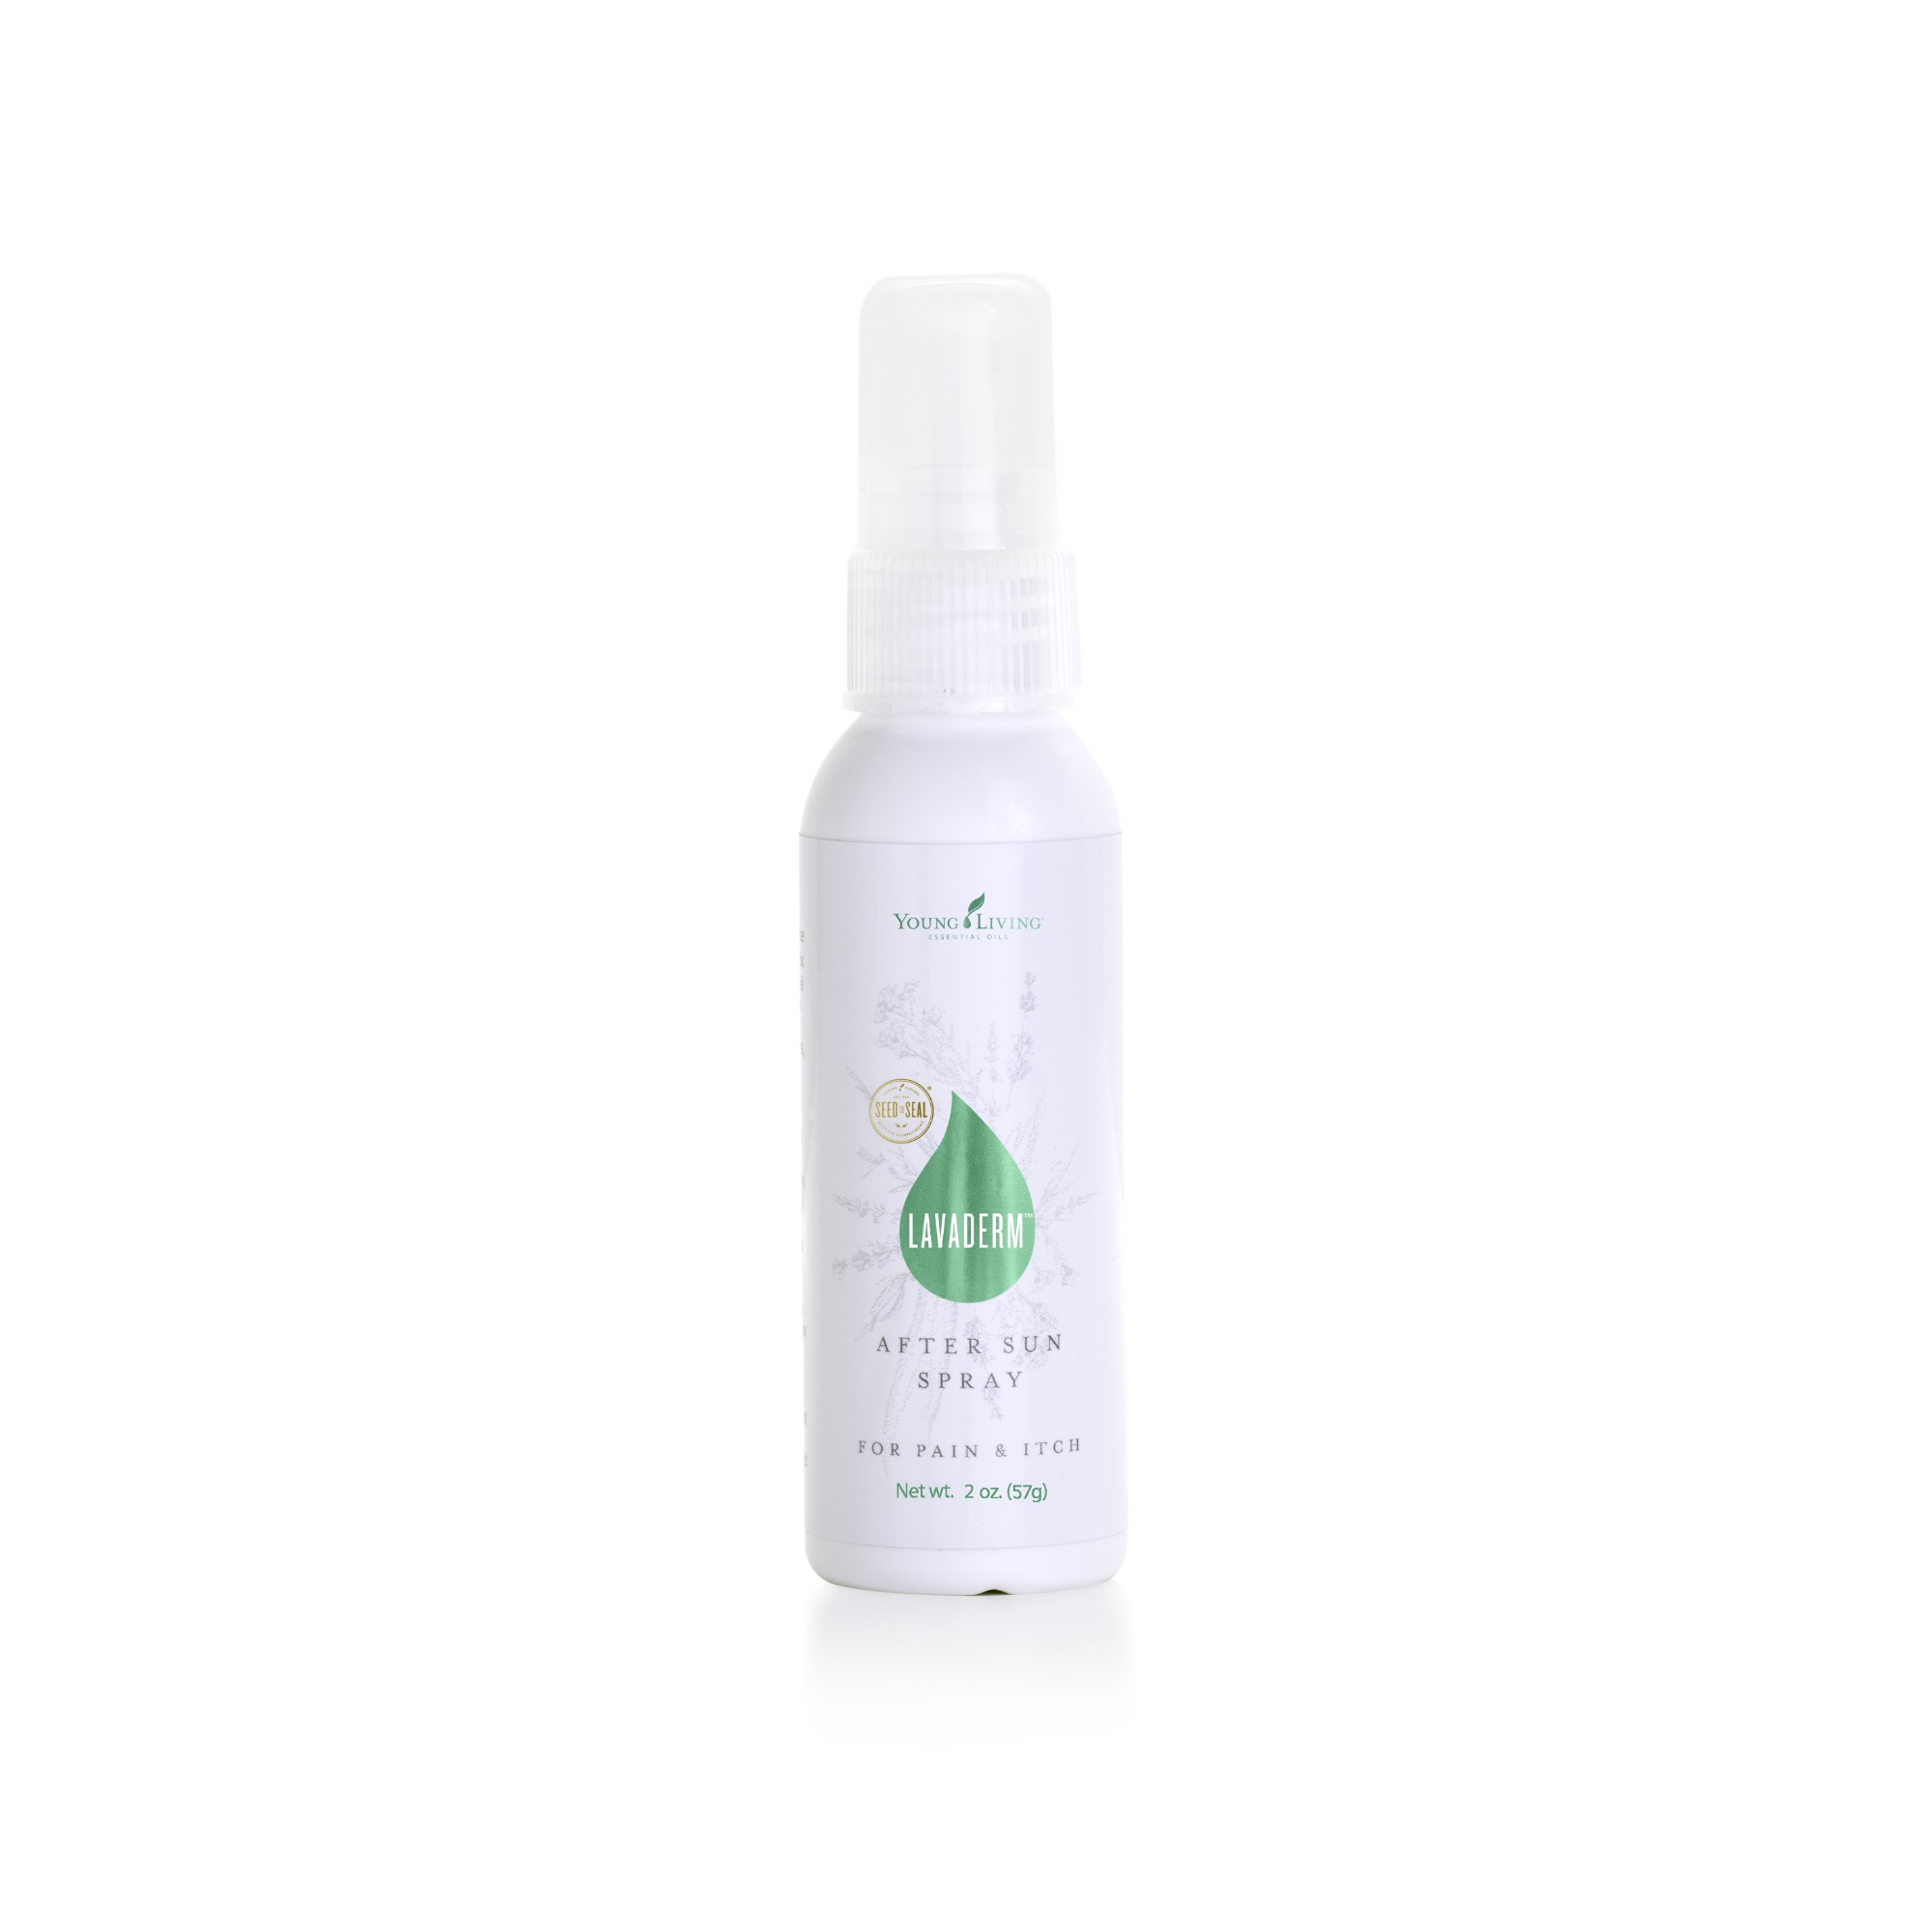 LAVADERM AFTER-SUN SPRAY    This naturally derived after-sun spray offers temporary relief from the pain and itching of minor burns, minor cuts, sunburns, scrapes, insect bites, and minor skin irritations. It soothes and cools the skin, and has moisturizing qualities from ingredients such as aloe, Lavender essential oil, and Helichrysum essential oil, which also helps prevent peeling.   Click here   to learn more about this product.